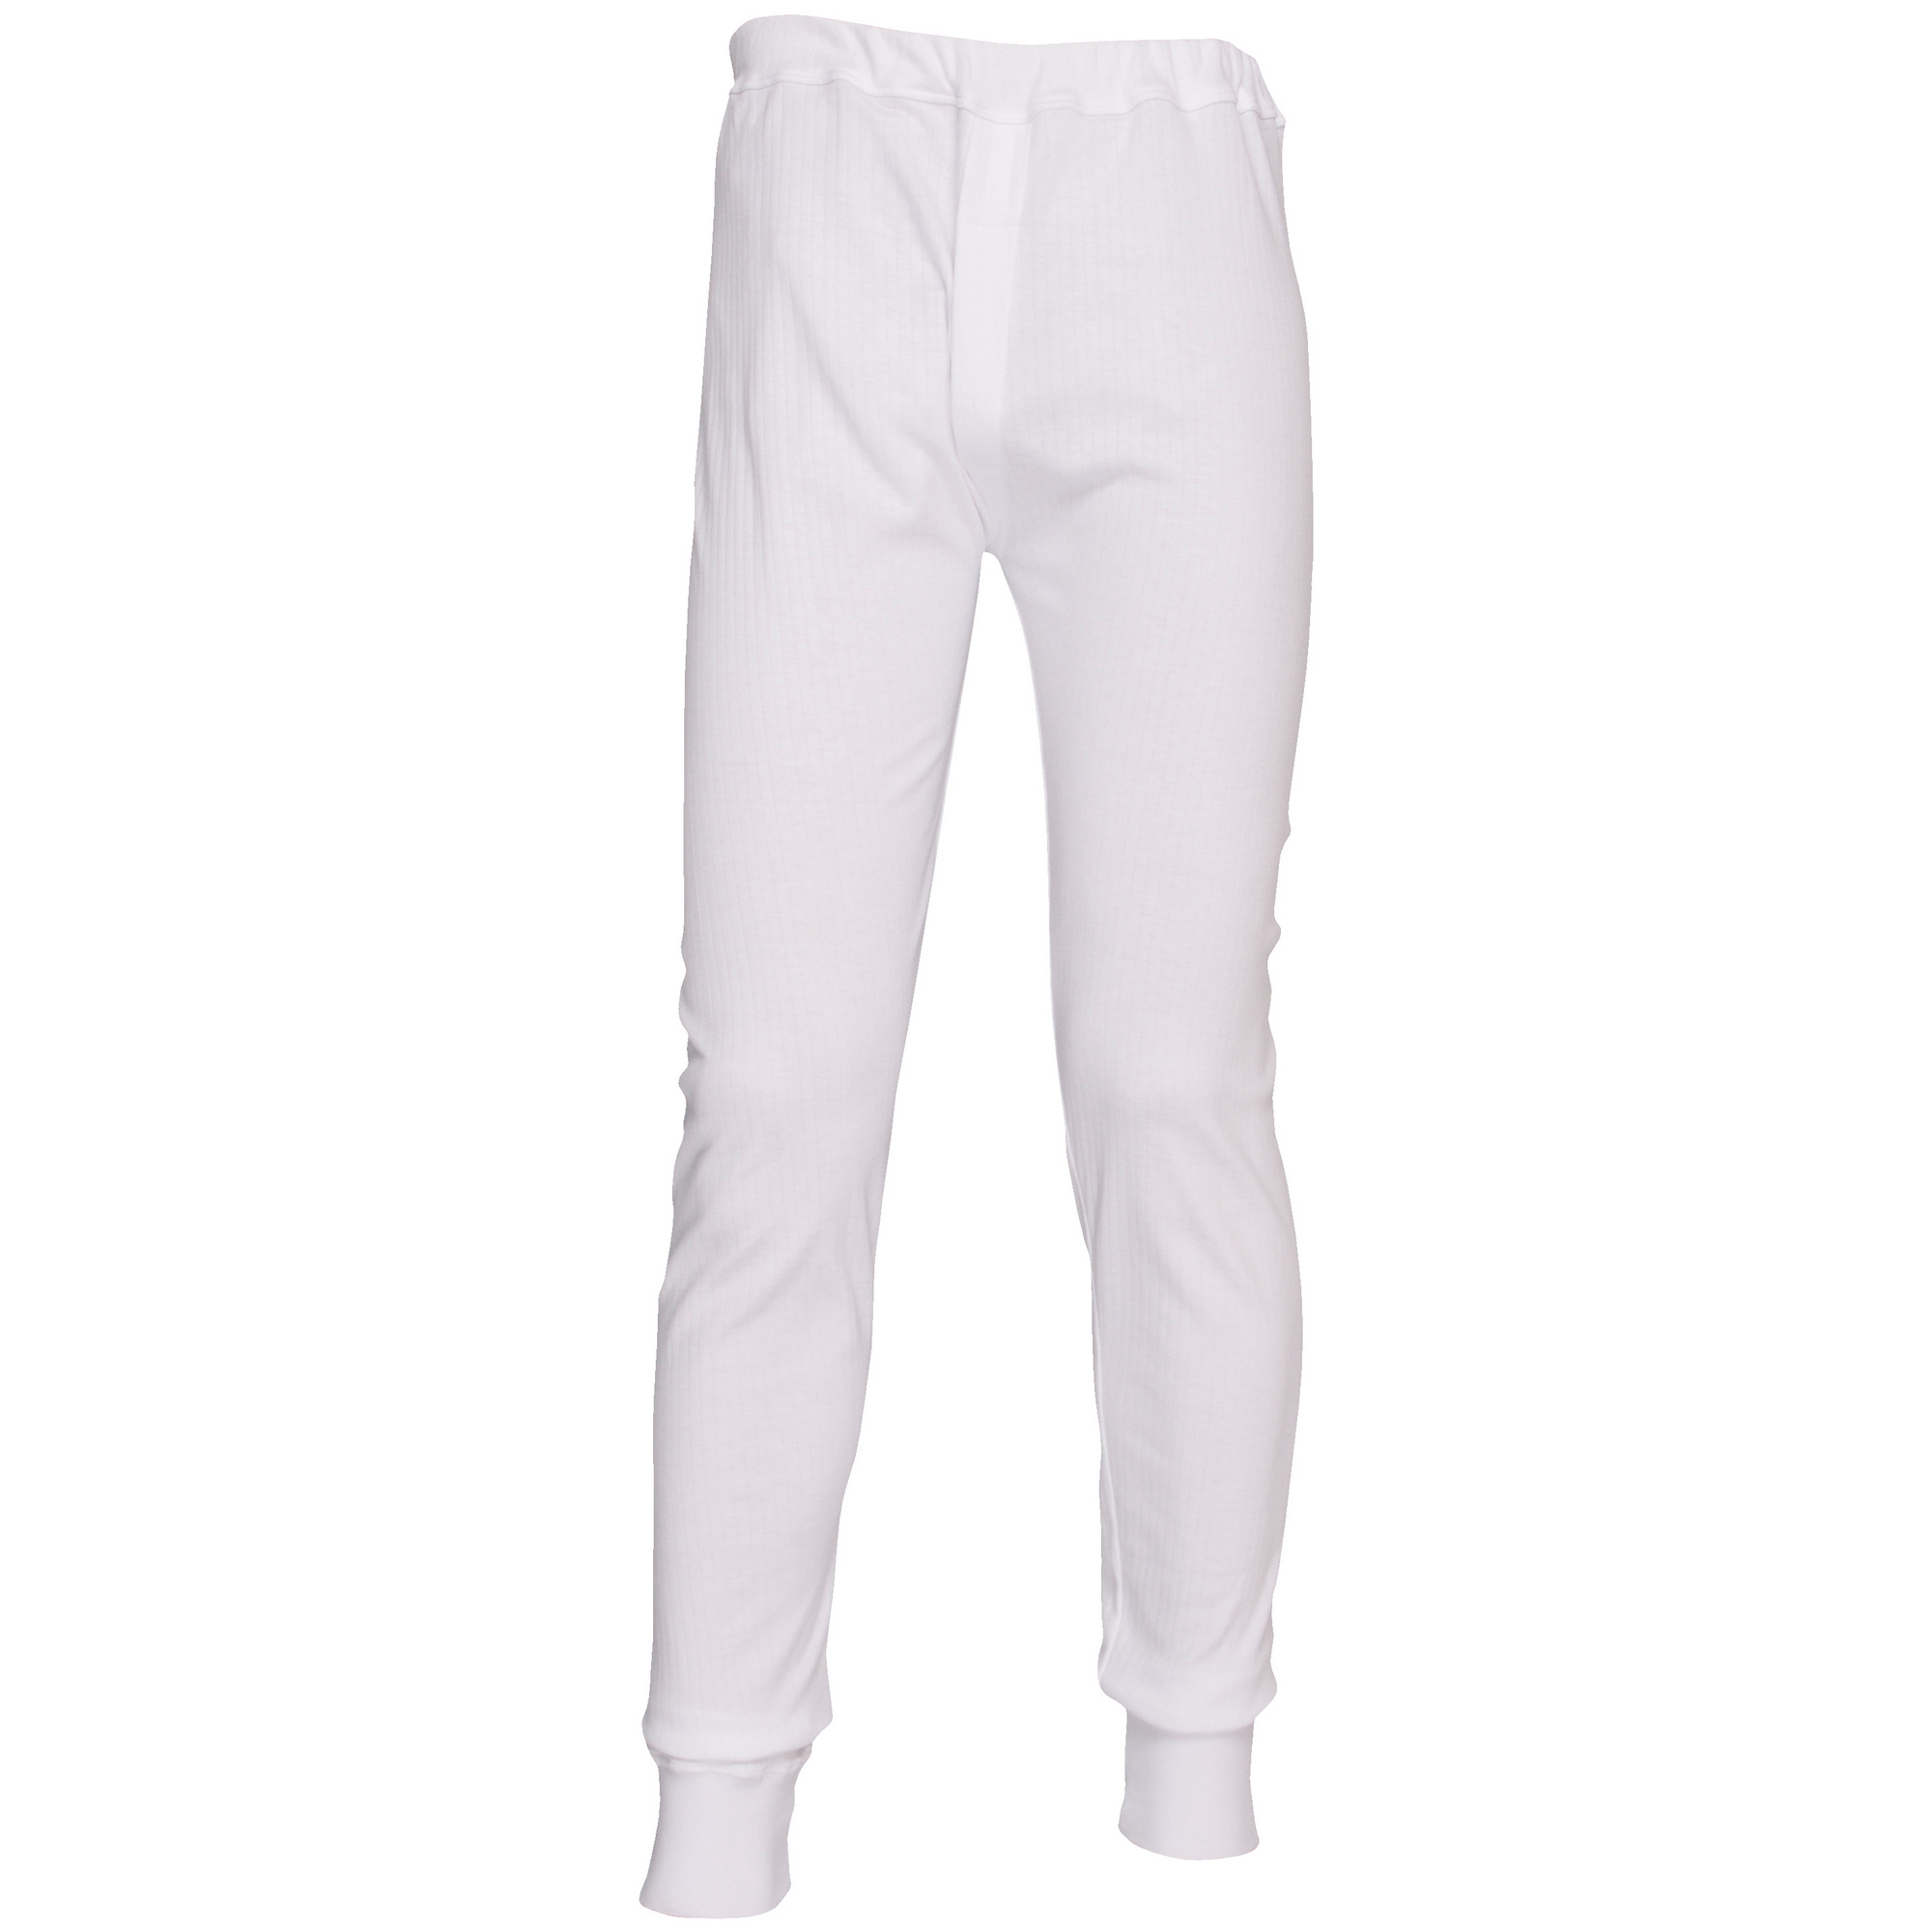 Portwest Mens Thermal Underwear Trousers (B121) / Bottoms (M) (White)